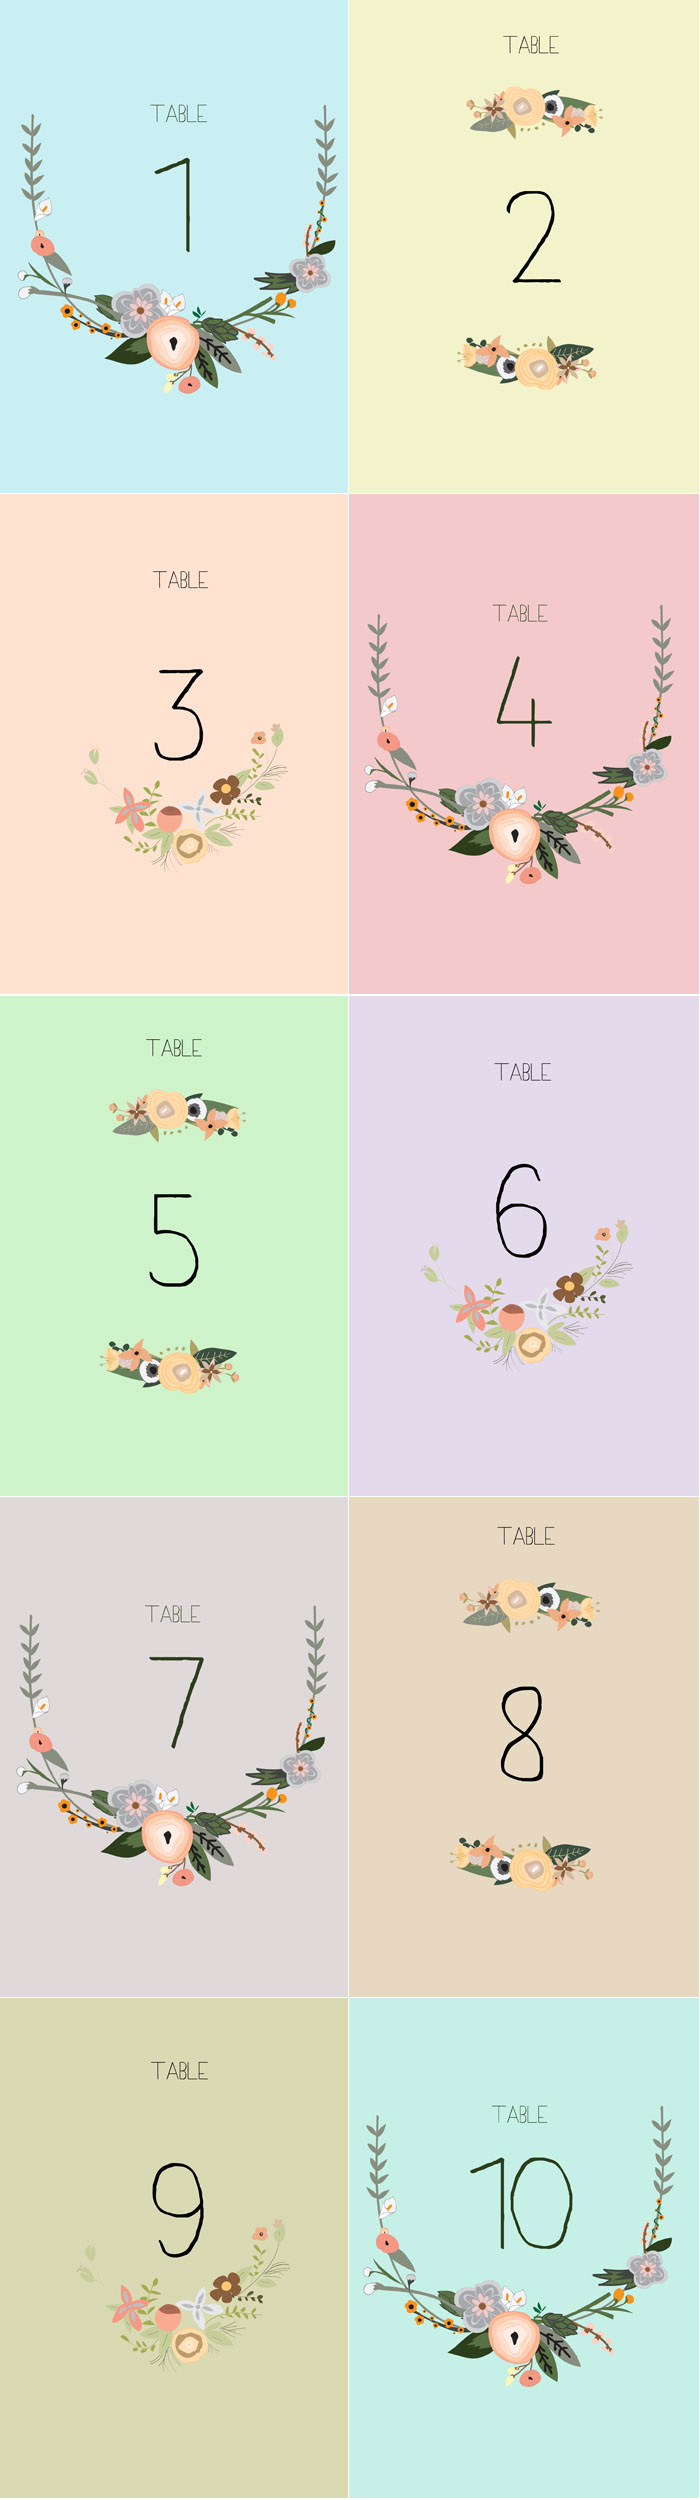 Free Printable Table Numbers - Free Printable Table Numbers